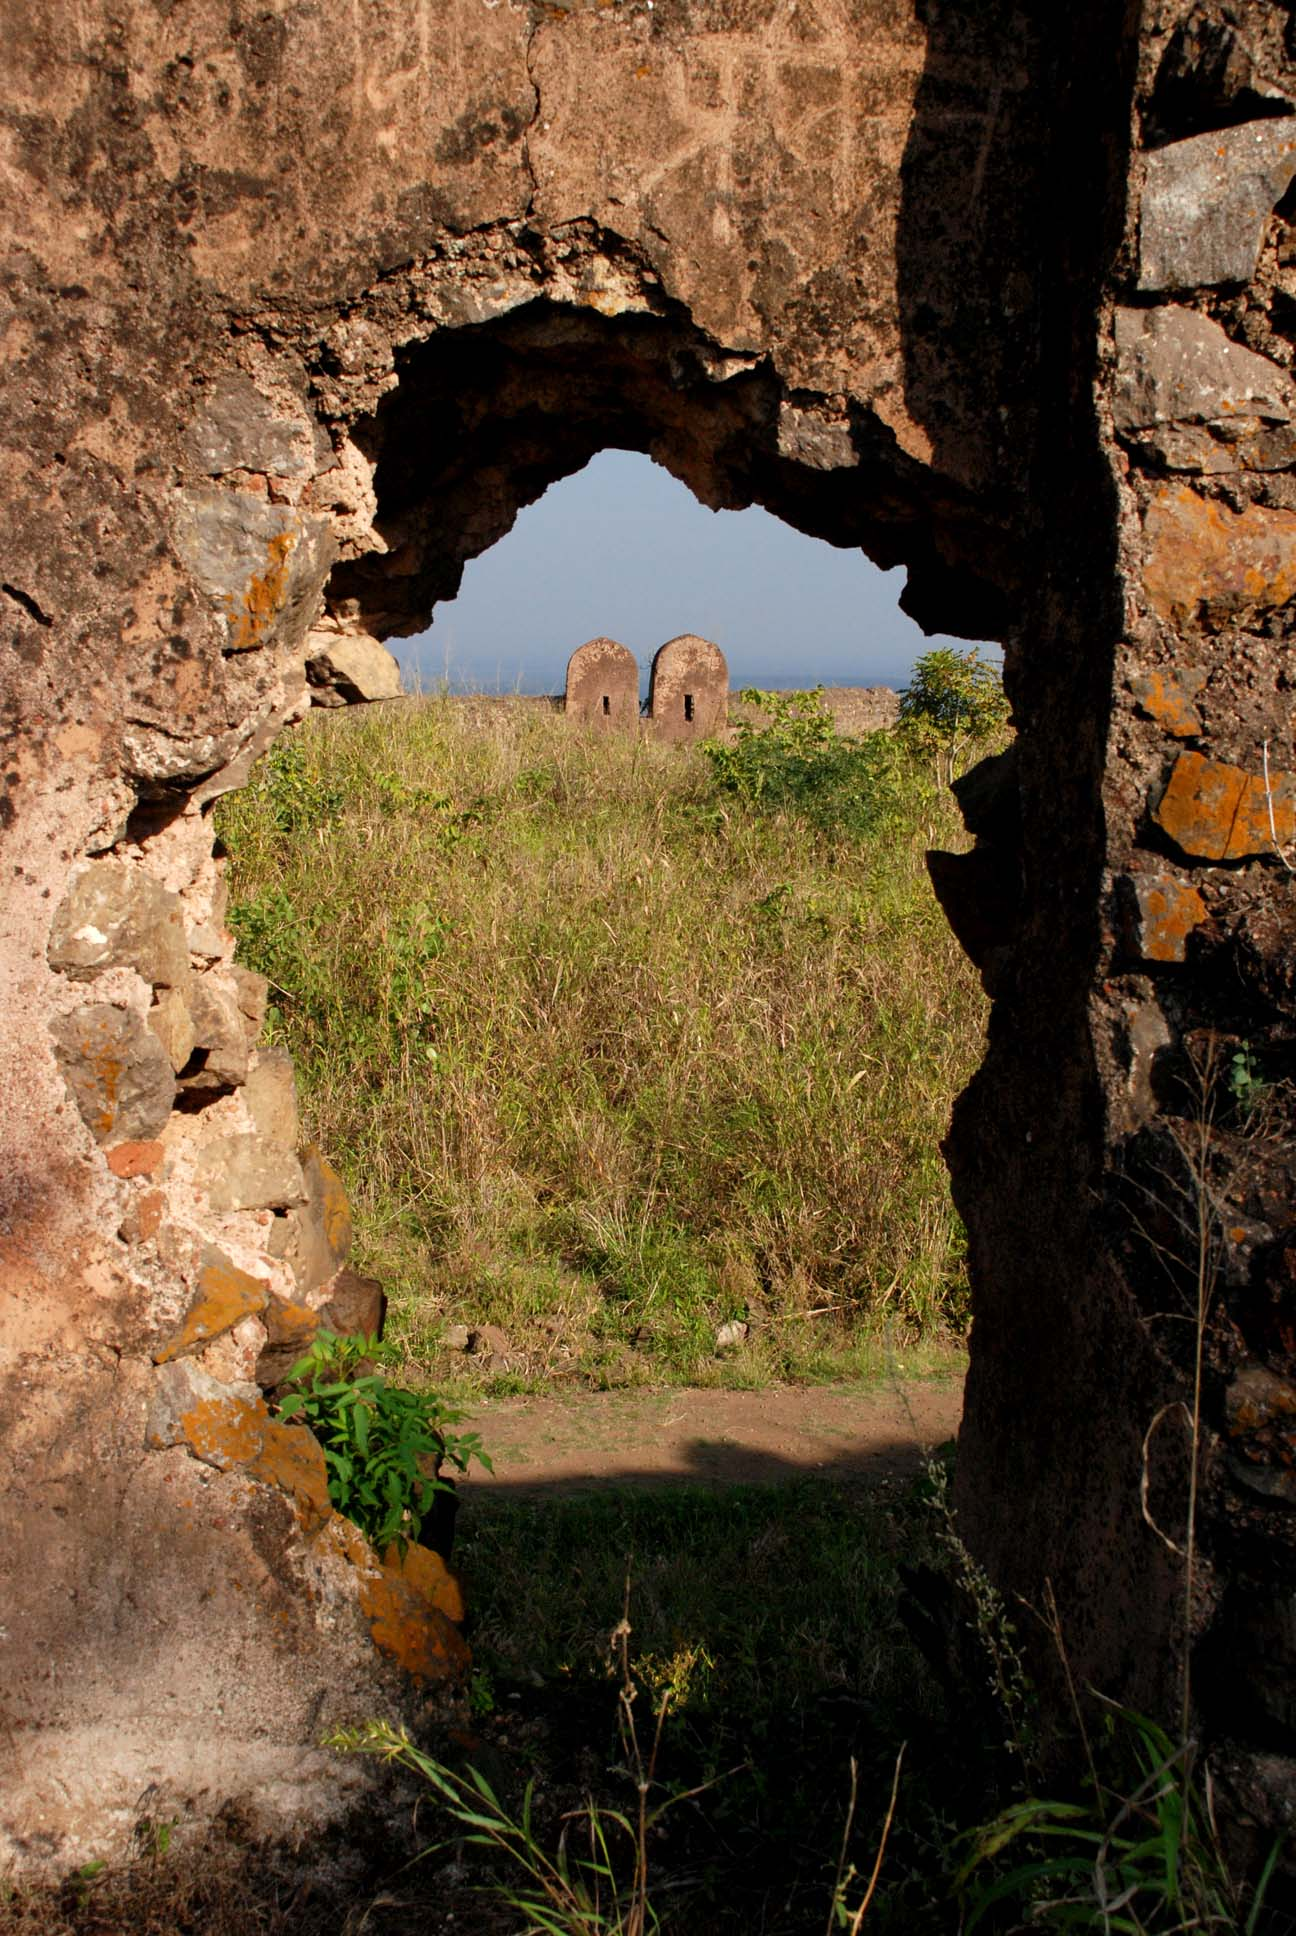 through the hole in the wall